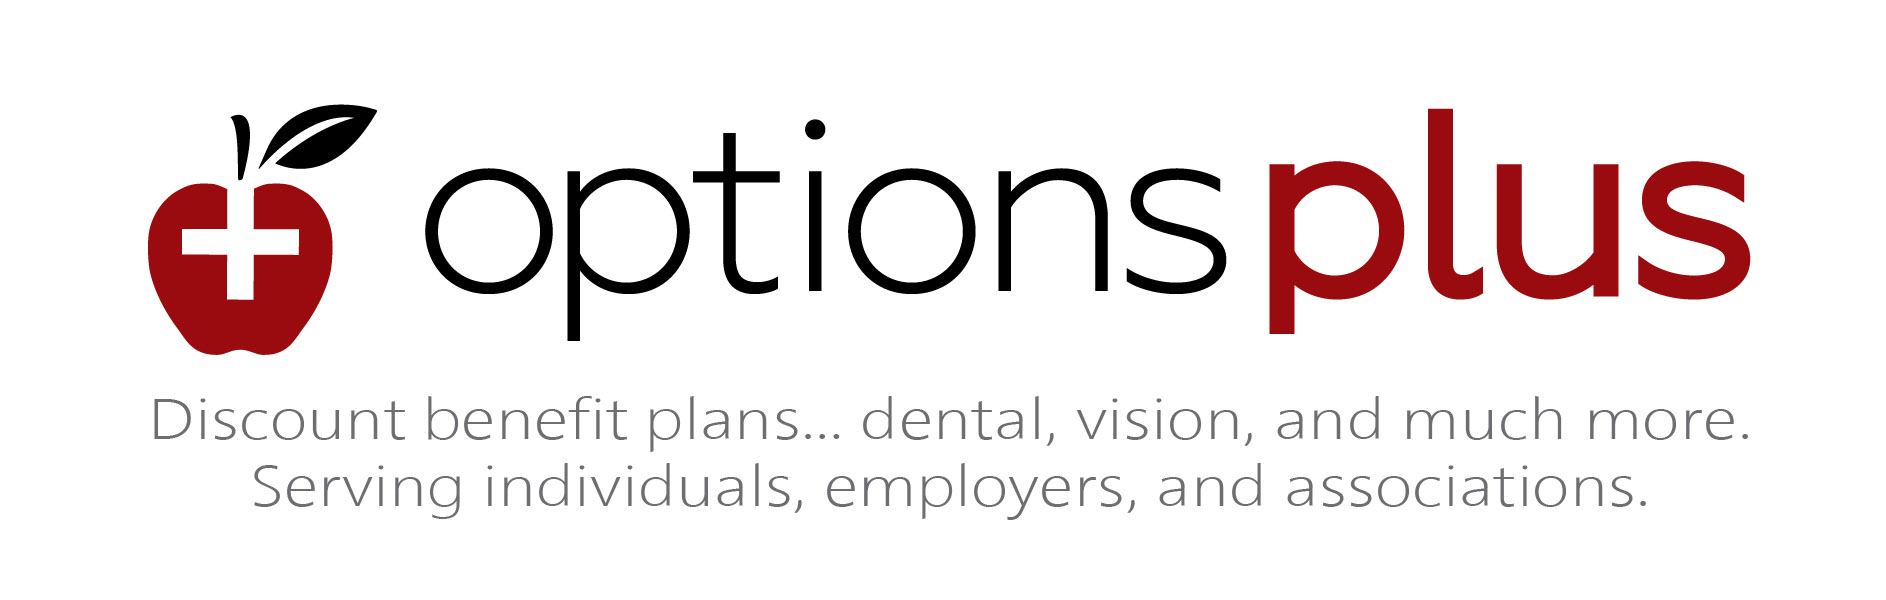 Options Plus provides Employers and Organizations with affordable discount benefits including dental, vision, telemedicine, petcare, and much more all on one ID Card.  Fully customized plans, no participation requirements, no underwriting.